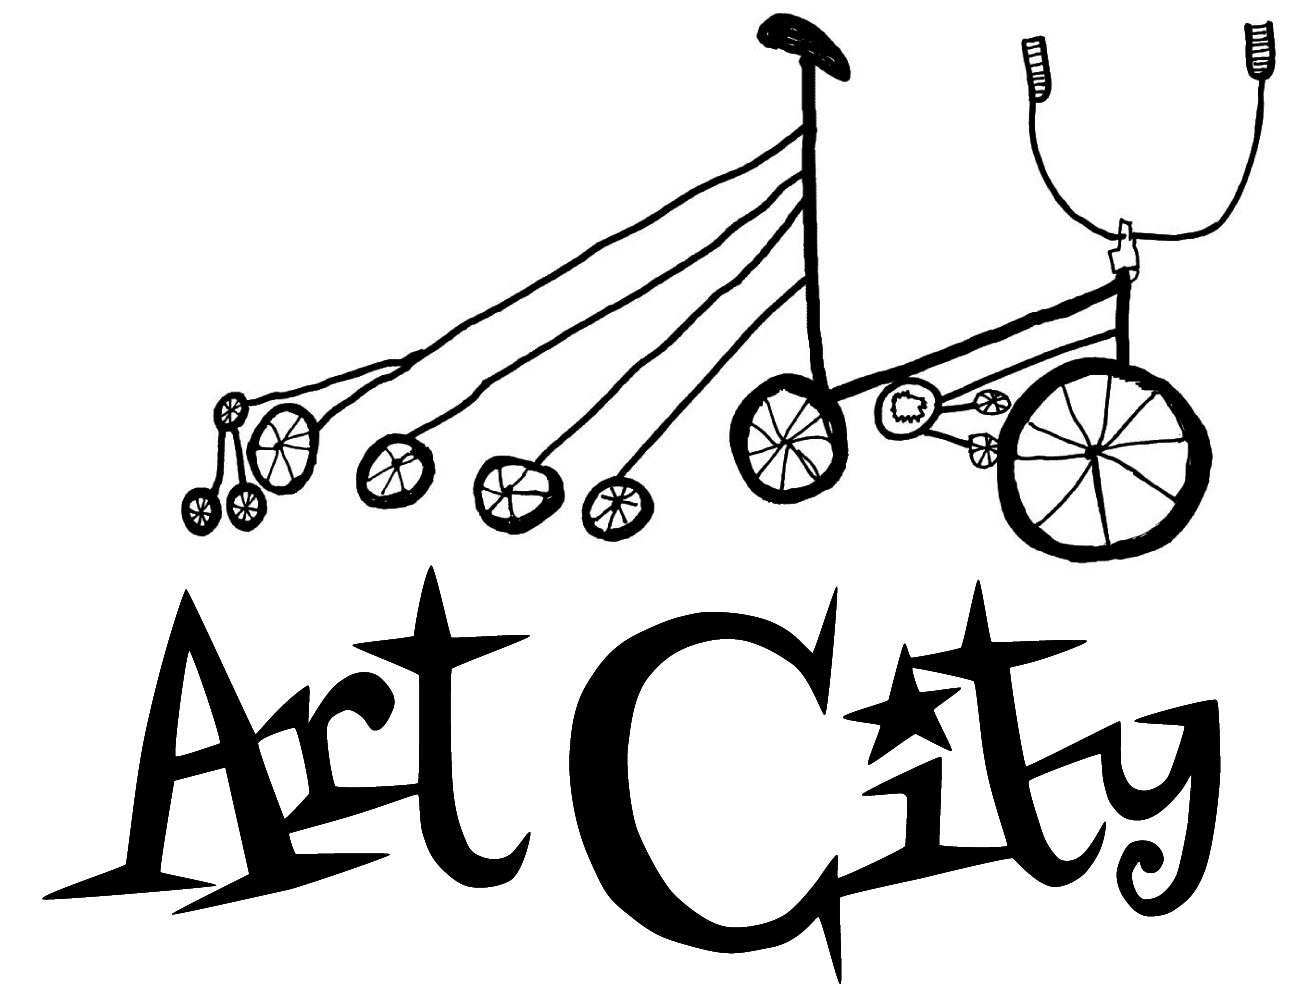 Copy of Art City logo_NEW_vert.jpg